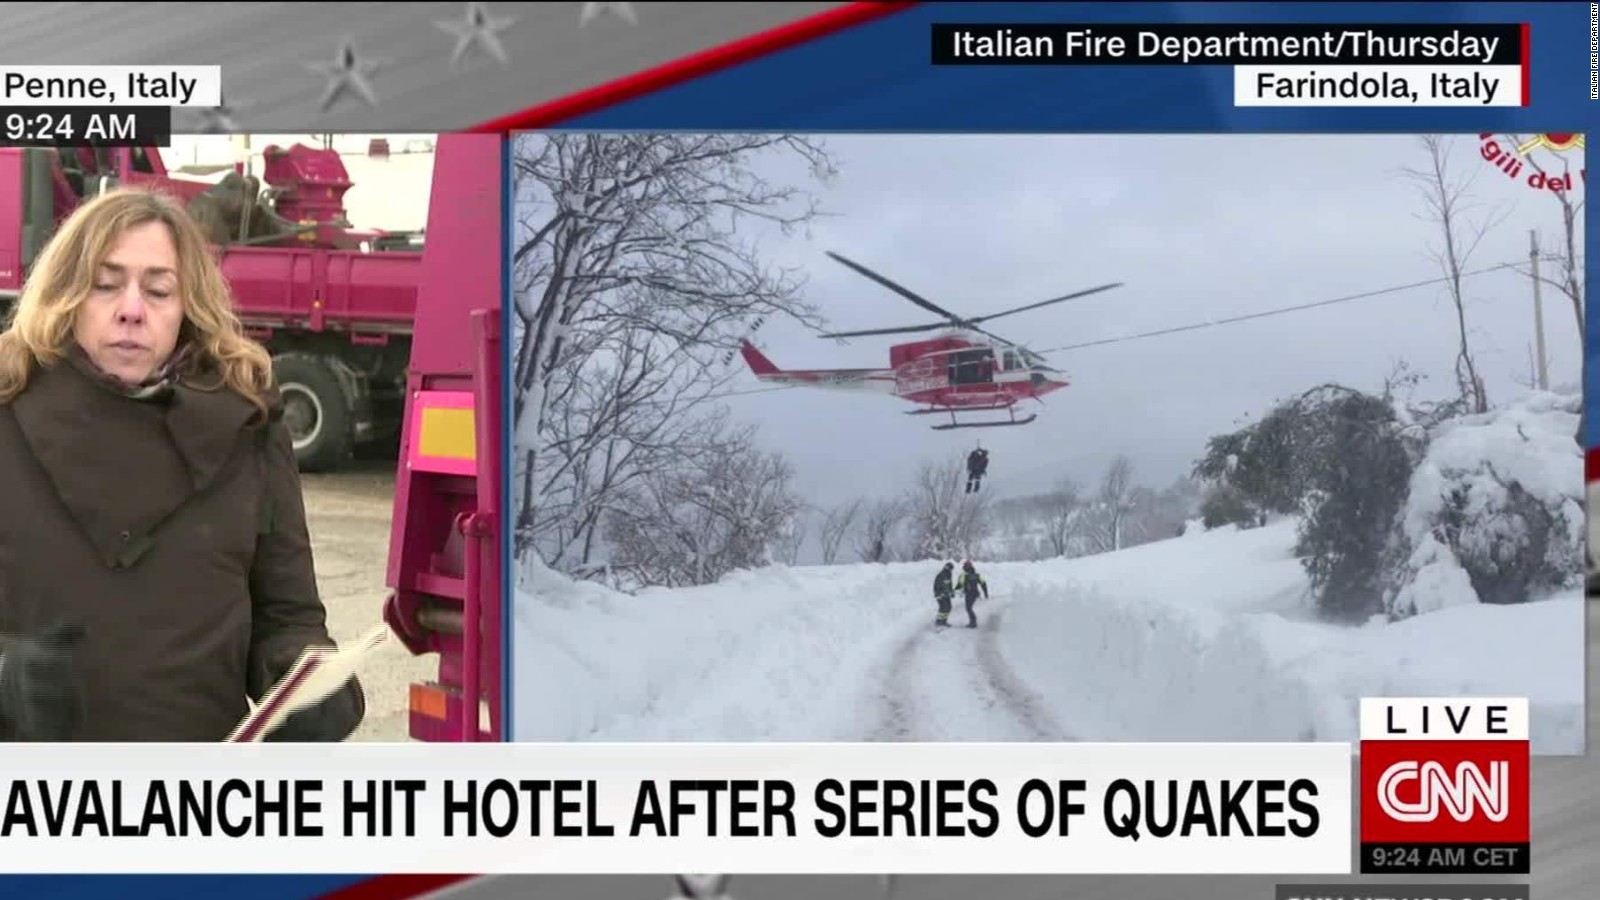 Rigopiano hotel avalanche first funerals as search goes on bbc news - Italy Avalanche Angels Angels Survivors Call Out To Rescuers Cnn Com